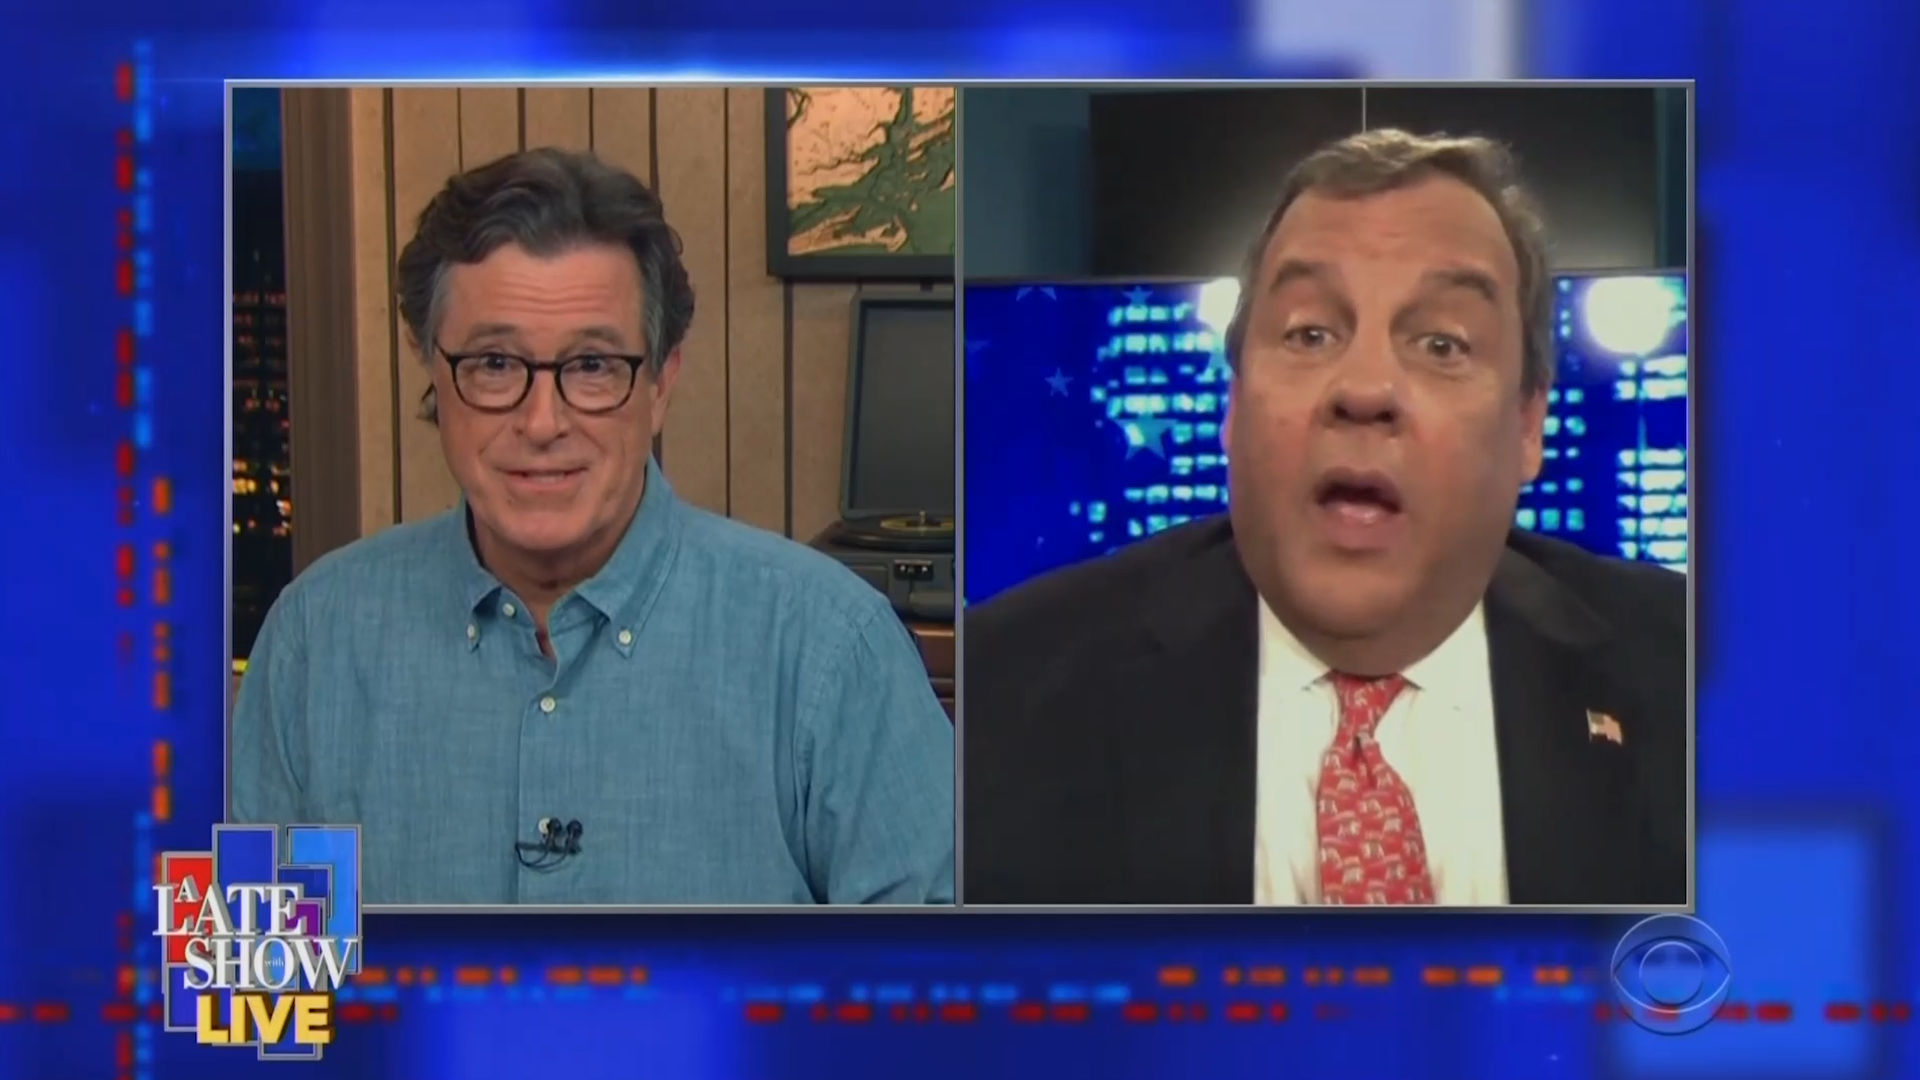 Stephen Colbert warns Chris Christie he may not be allowed back on 'Late Show' if Trump is reelected